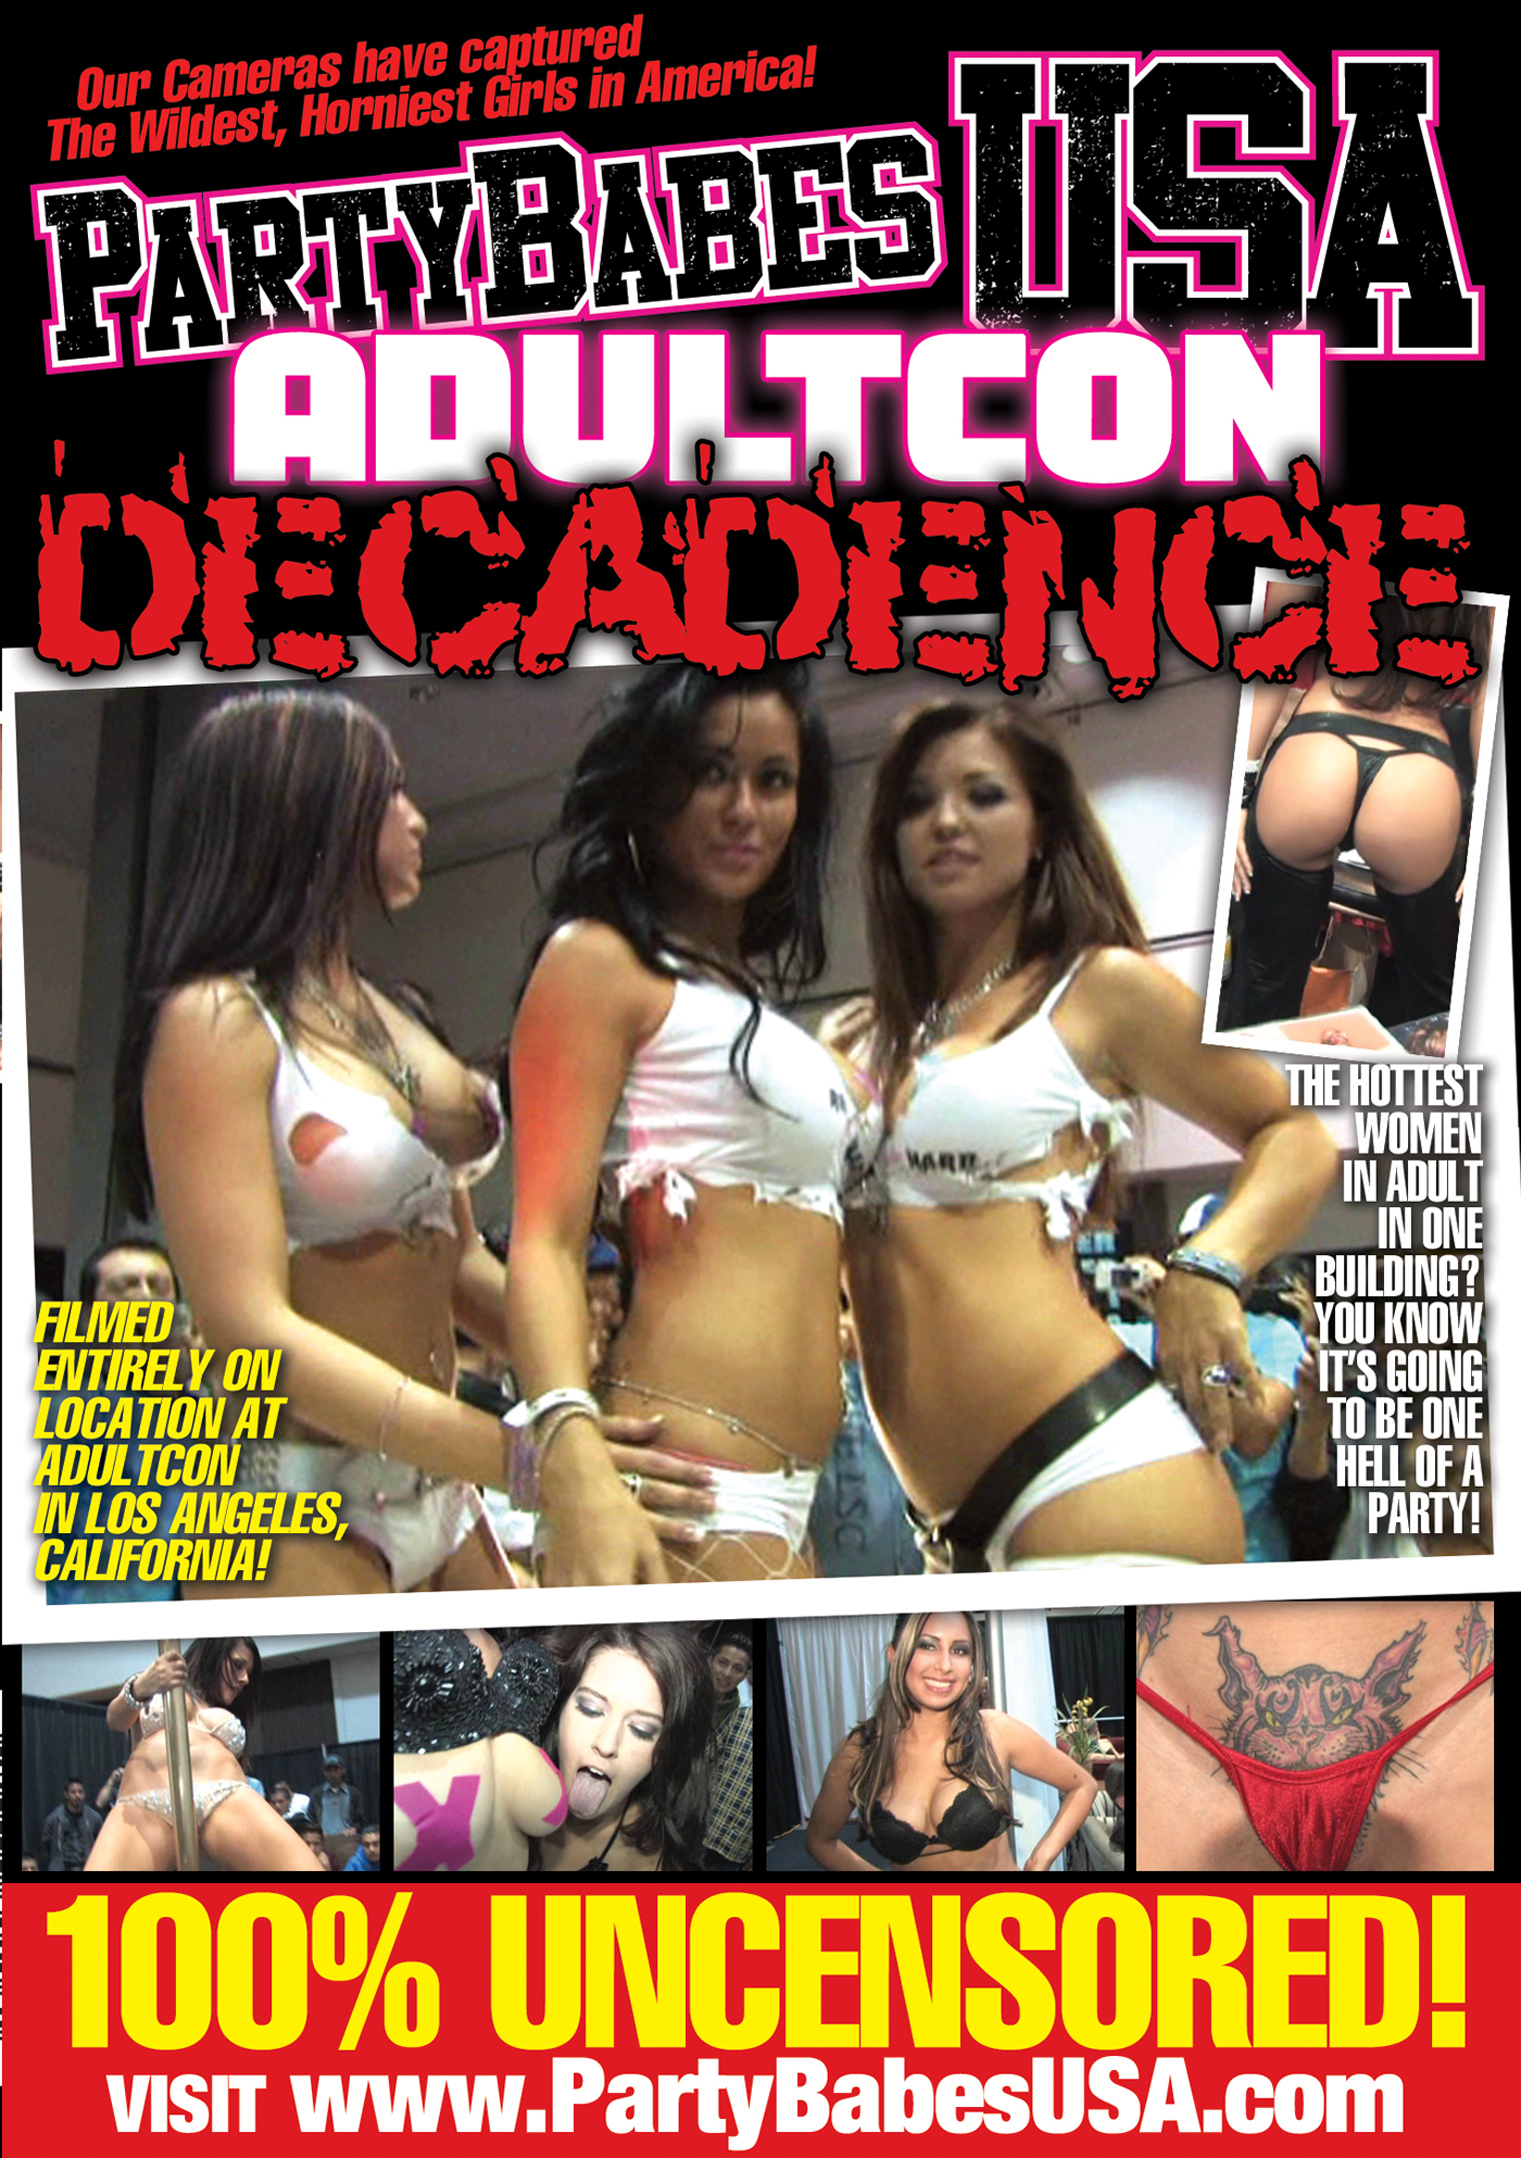 Party Babes USA: Adultcon Decadence